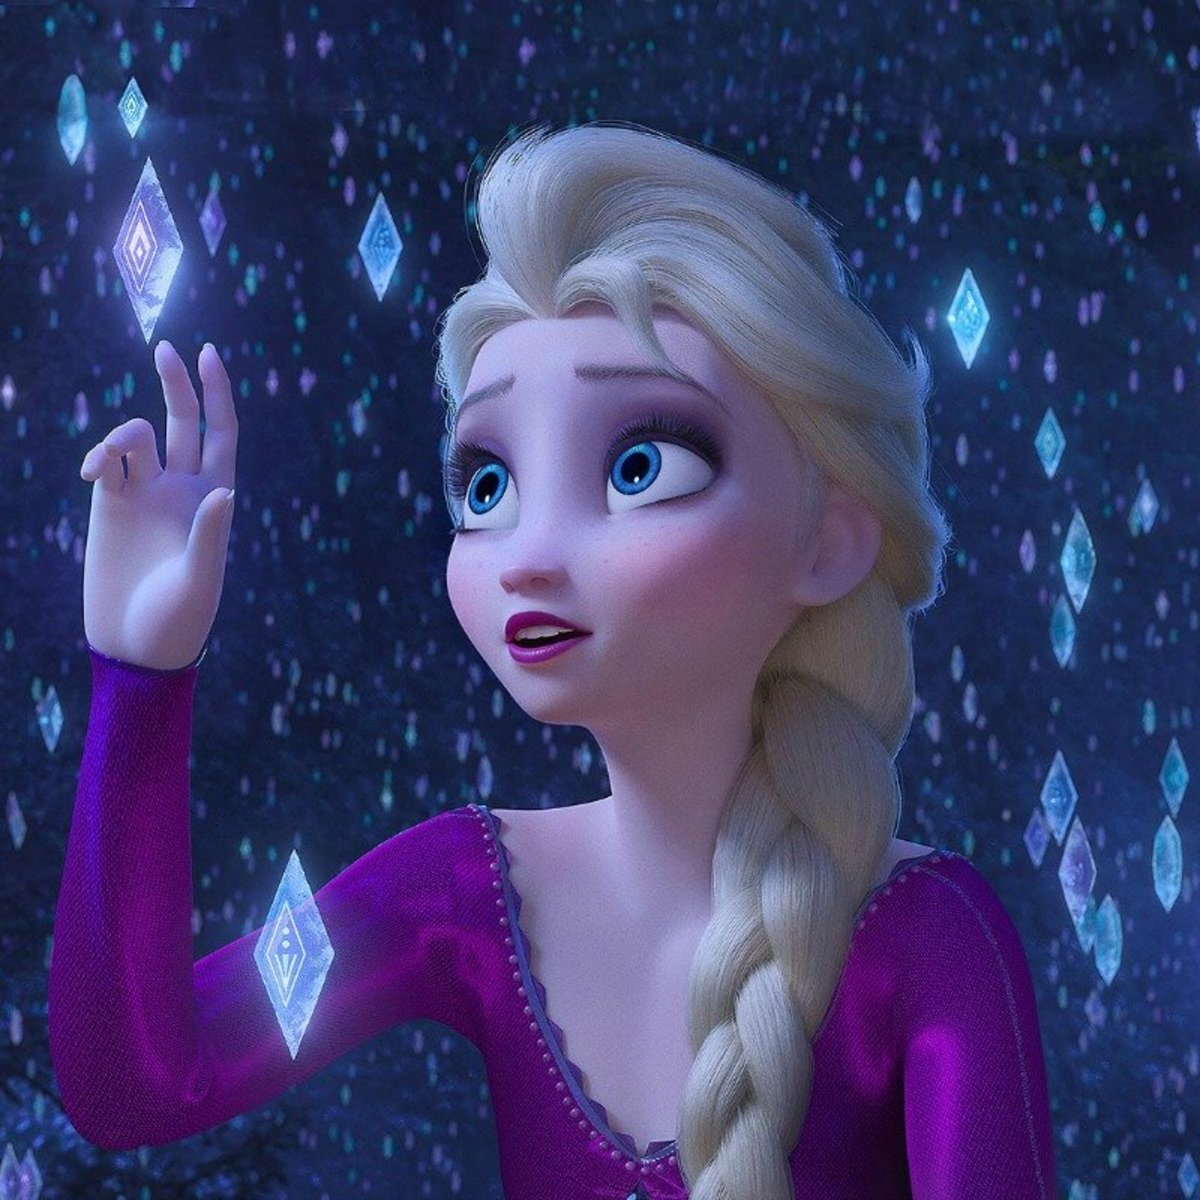 Frozen 2 review: We have precisely 8 questions about the new